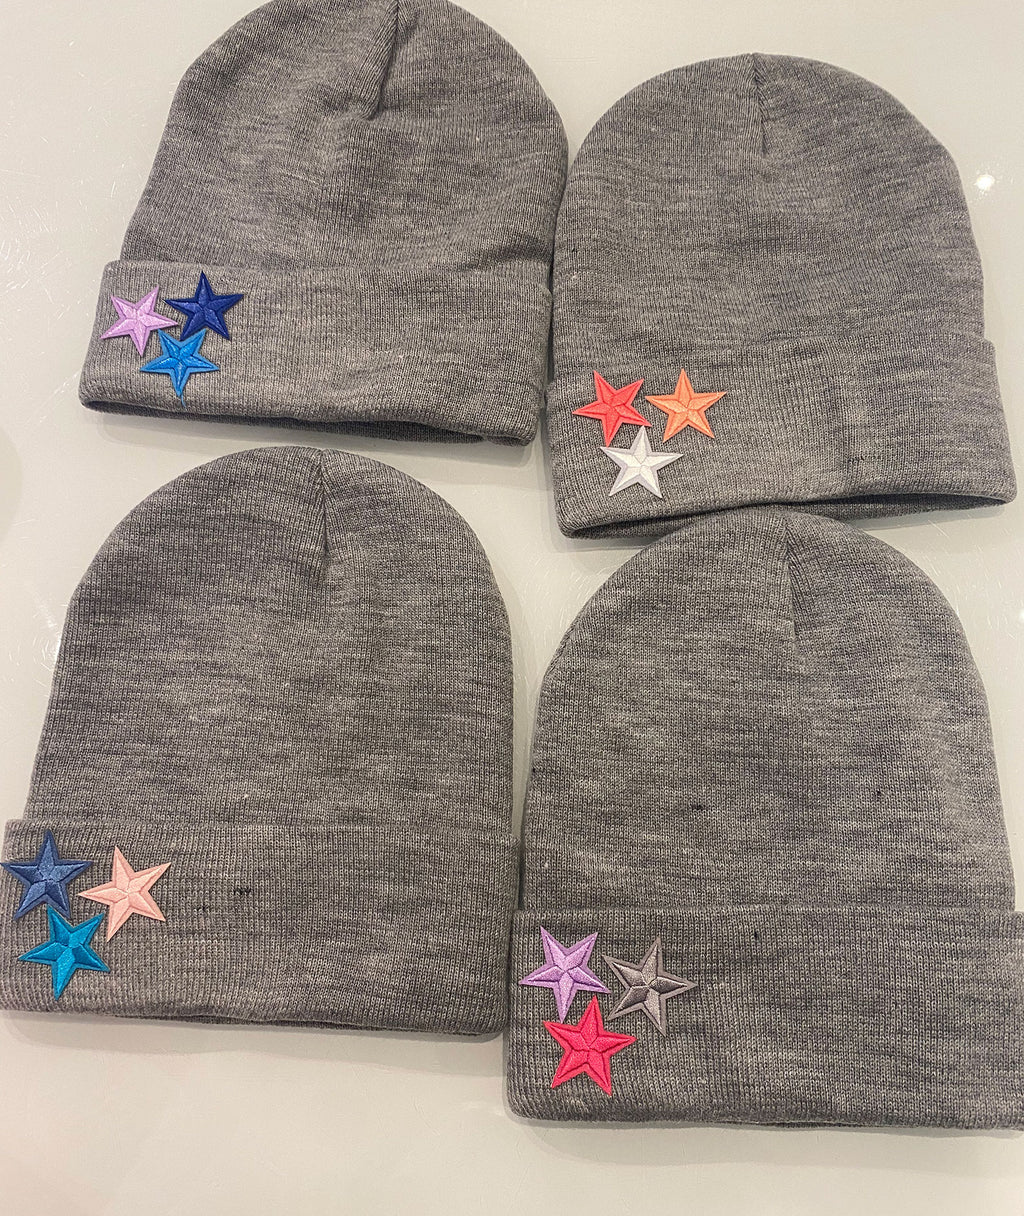 SK Designs Three Star Beanies